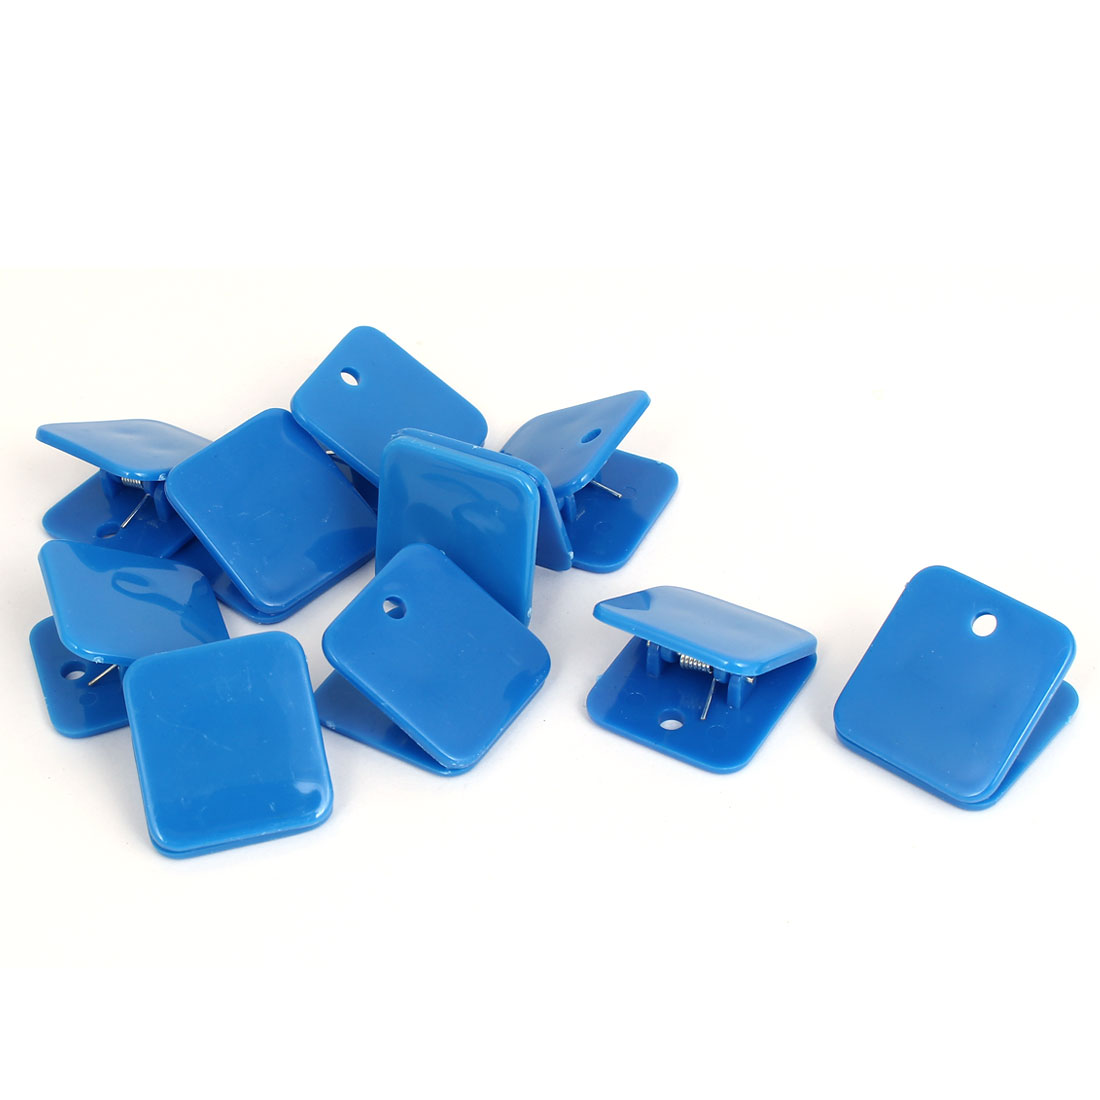 Plastic Square Spring Loaded Paper Document Memo Note Stationery Clip Blue 10Pcs